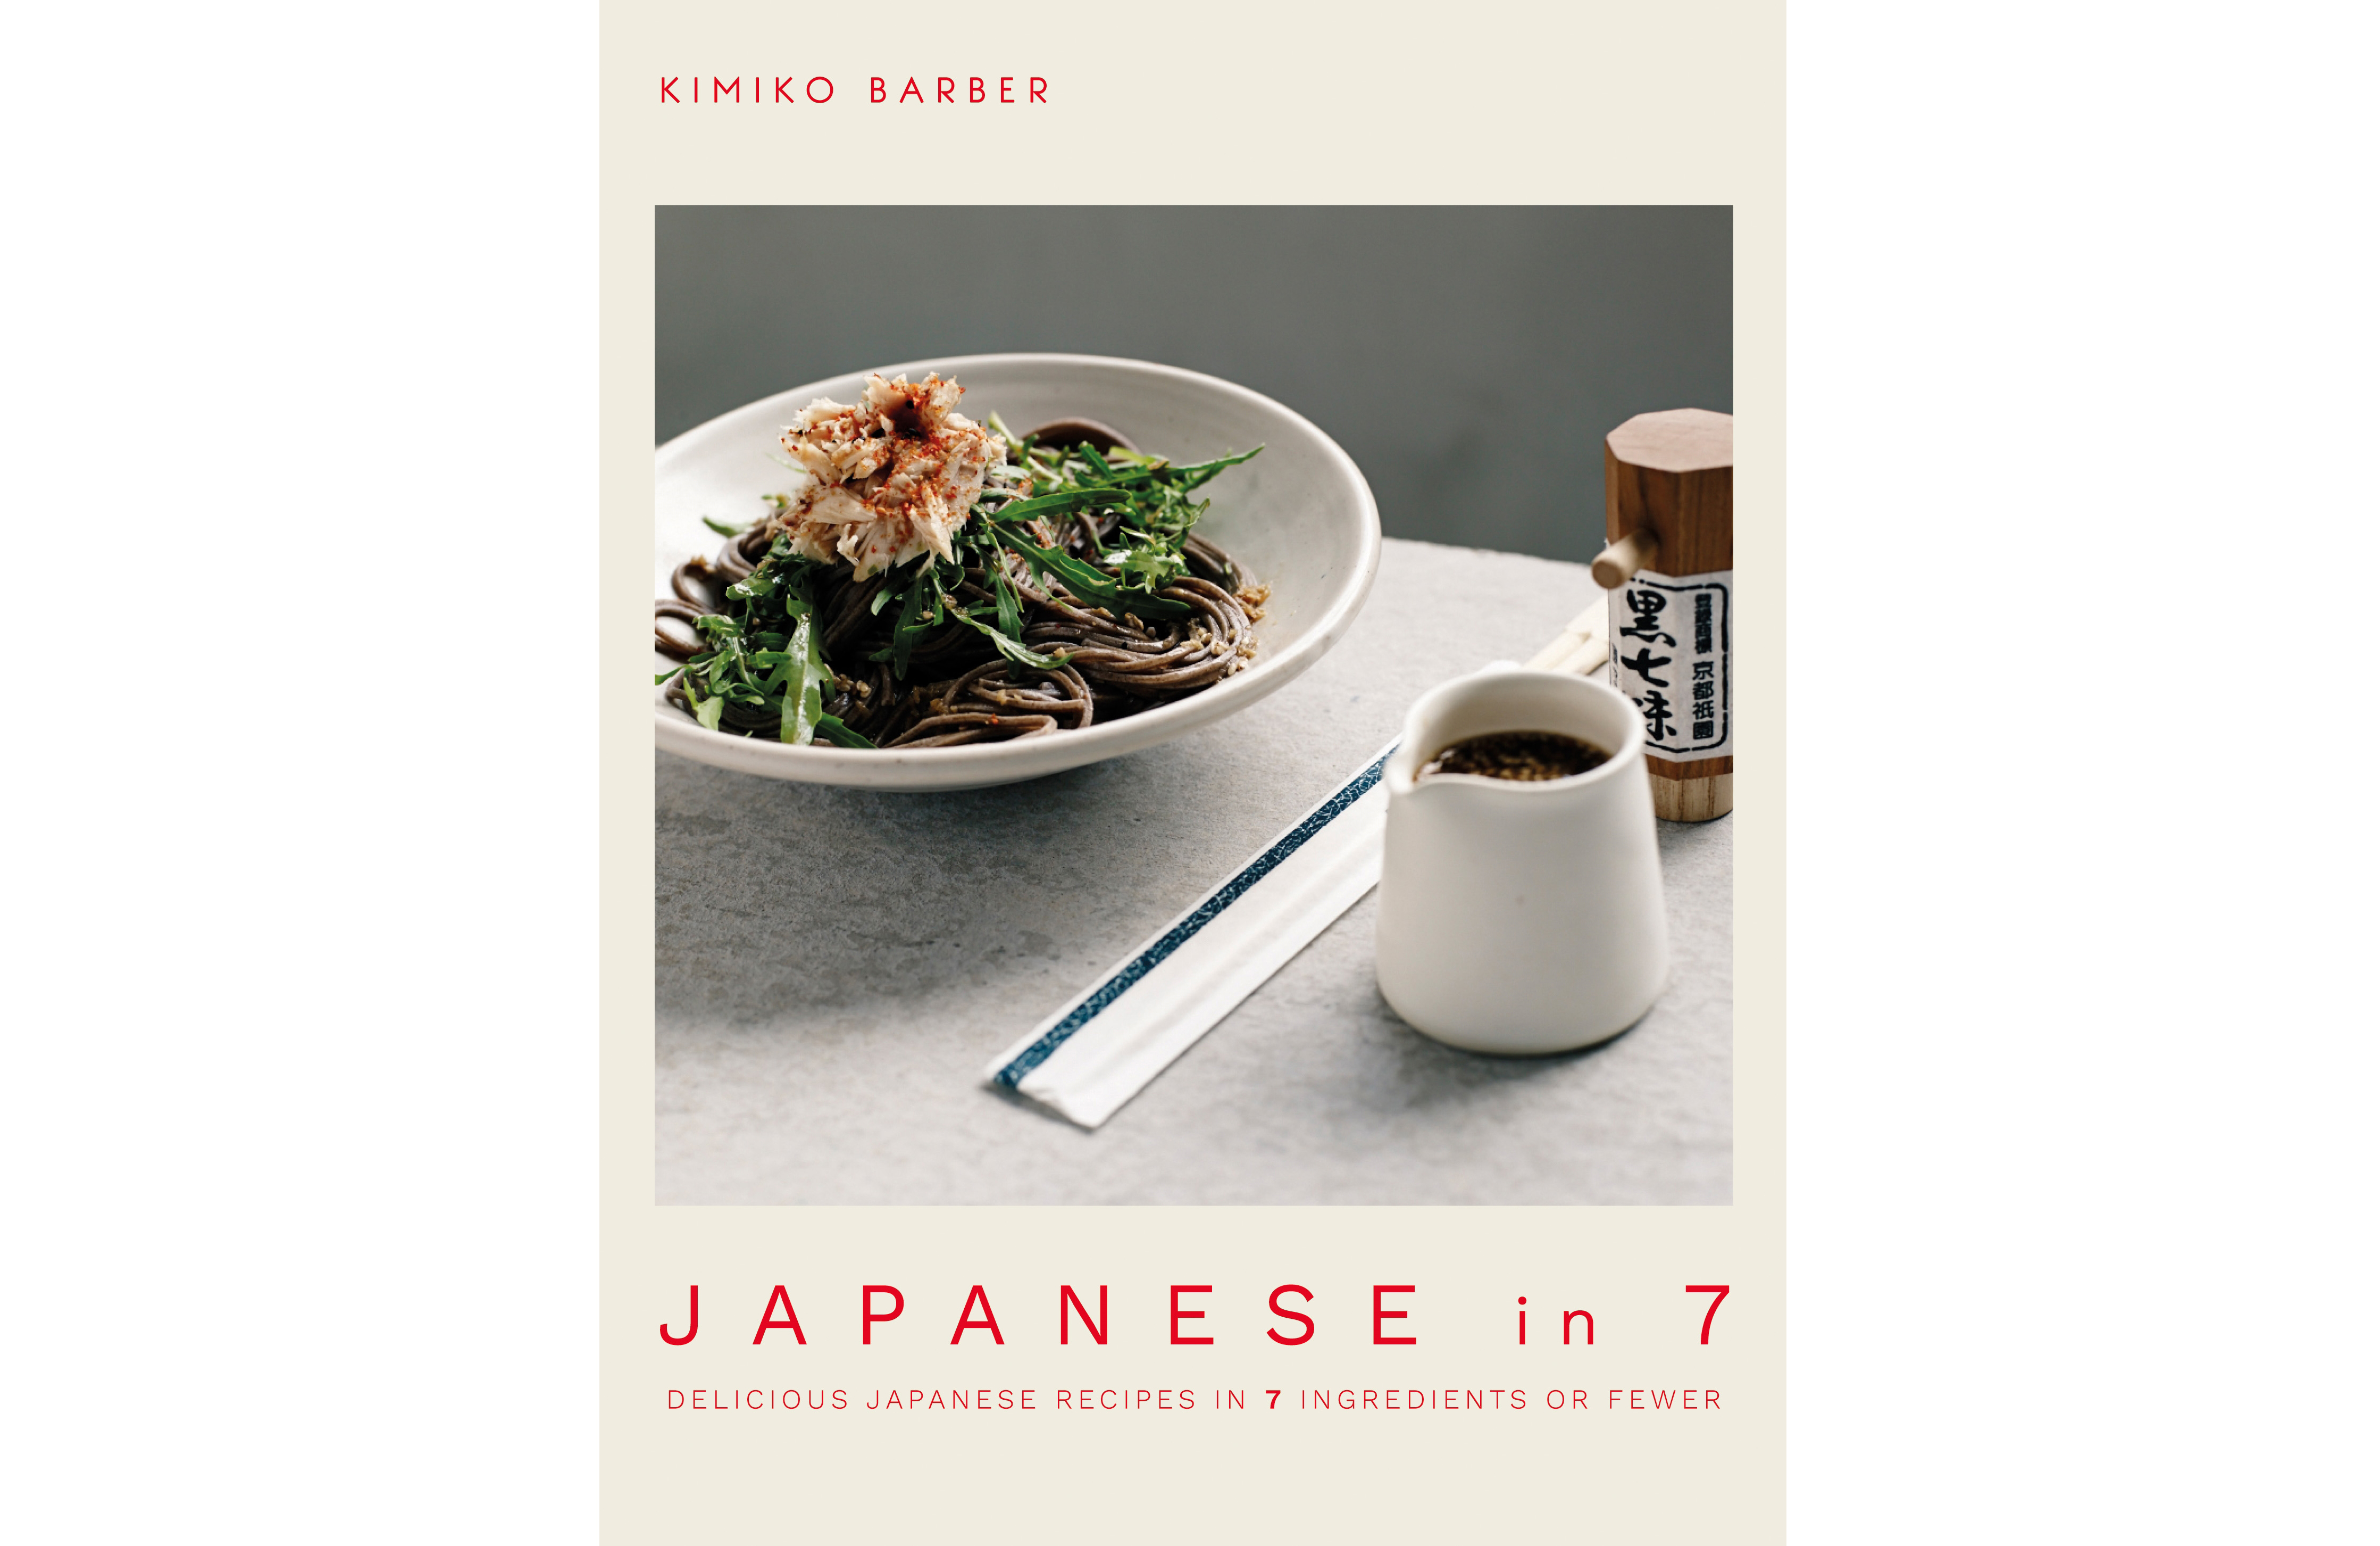 Japanese in 7 by Kimiko Barber (Kyle Books/Emma Lee/PA)